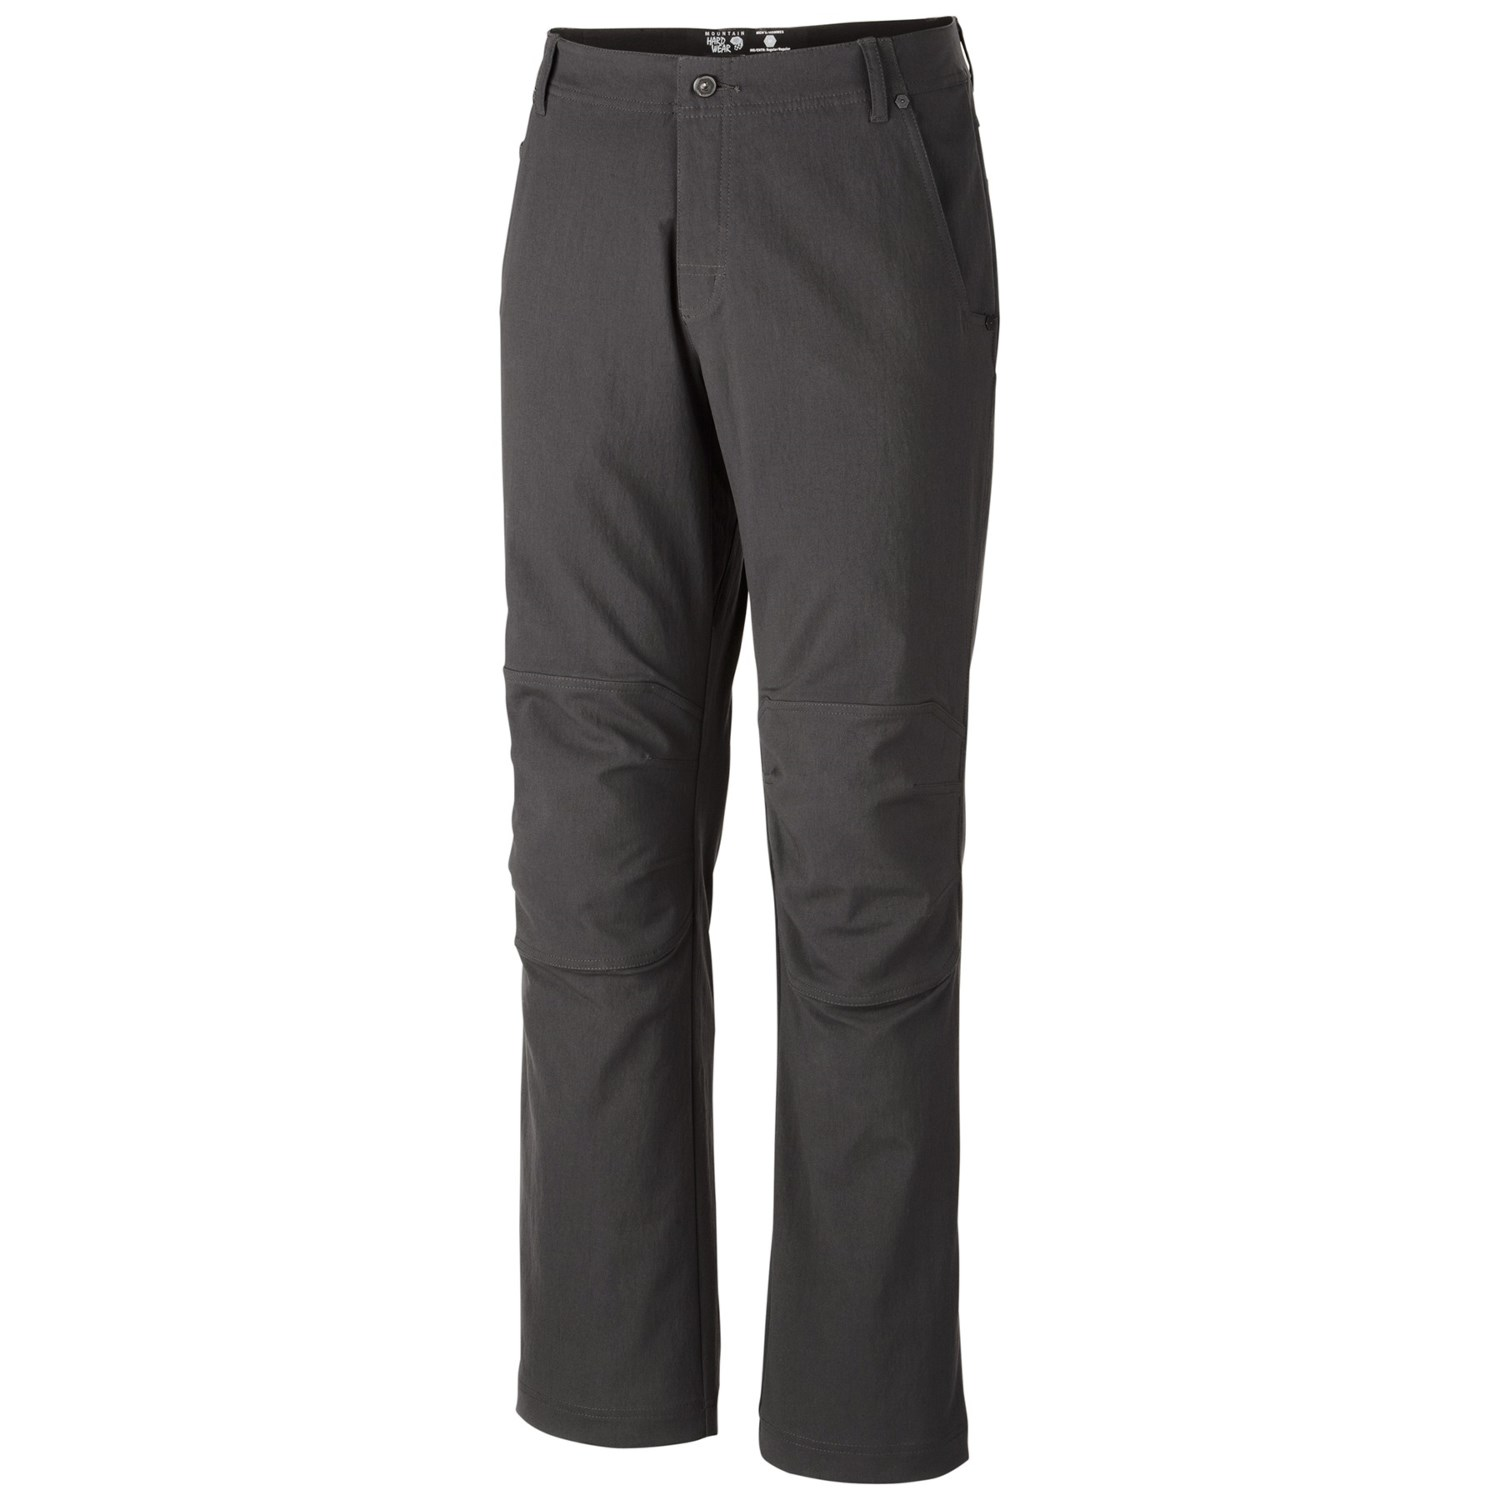 Alpine Design Clothing Tech Series Pants Mountain Hardwear Piero Pants